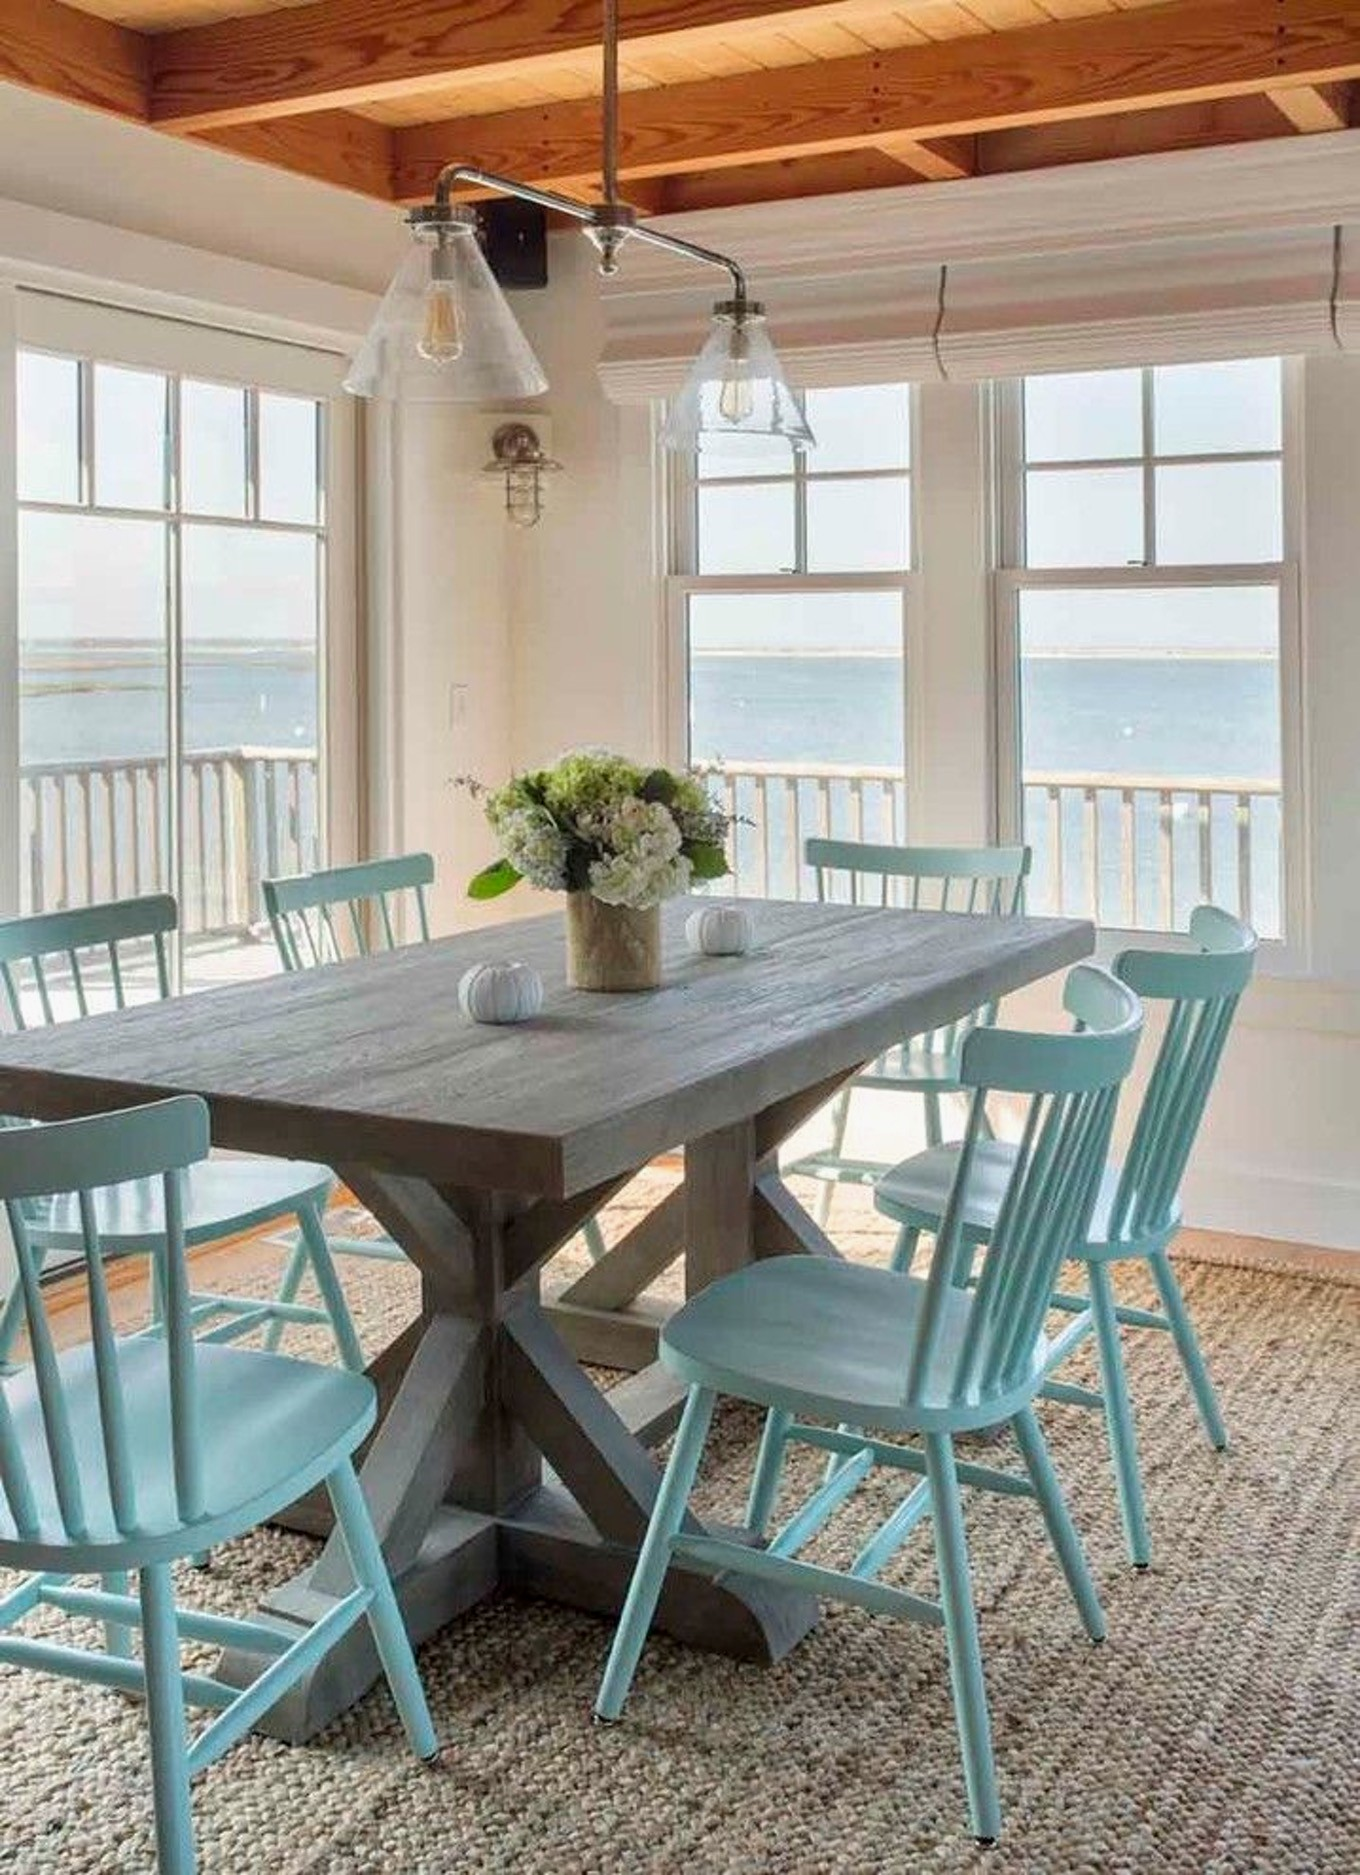 9 Beach House Decor Ideas To Make You